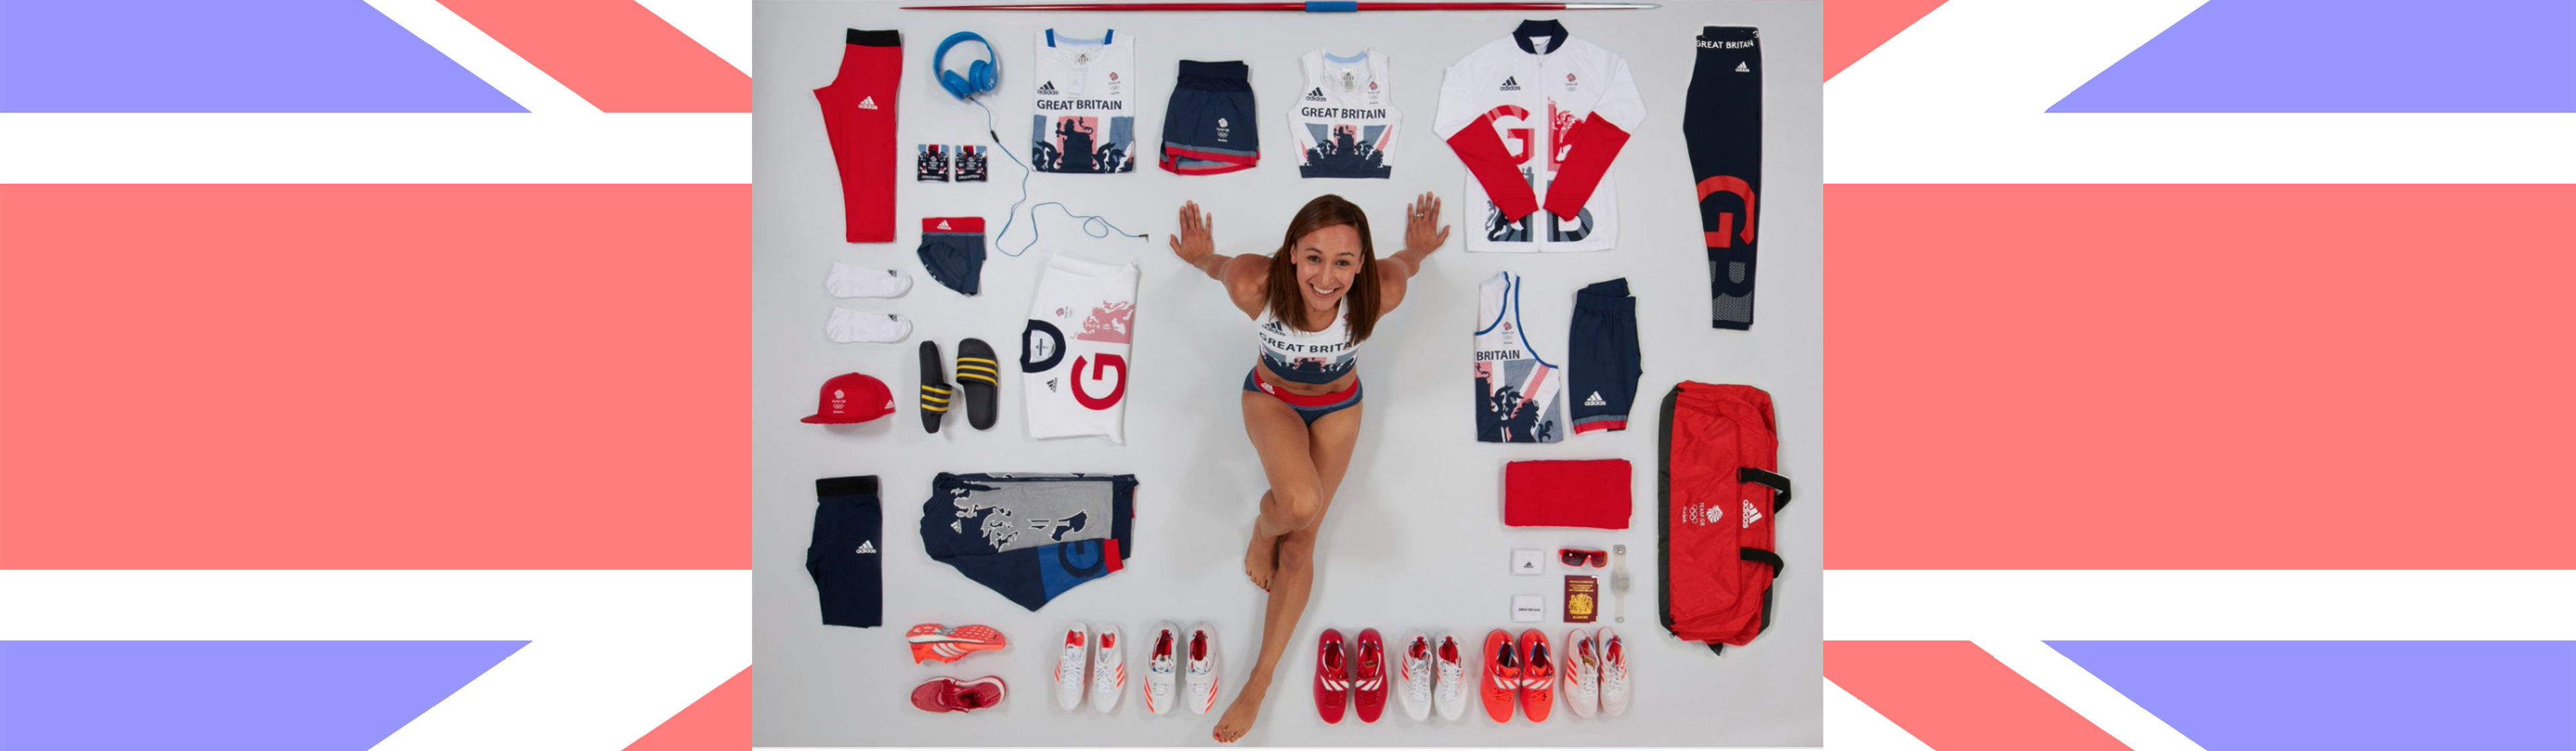 Stella McCartney's Patriotic Olympic Kit for Team GB